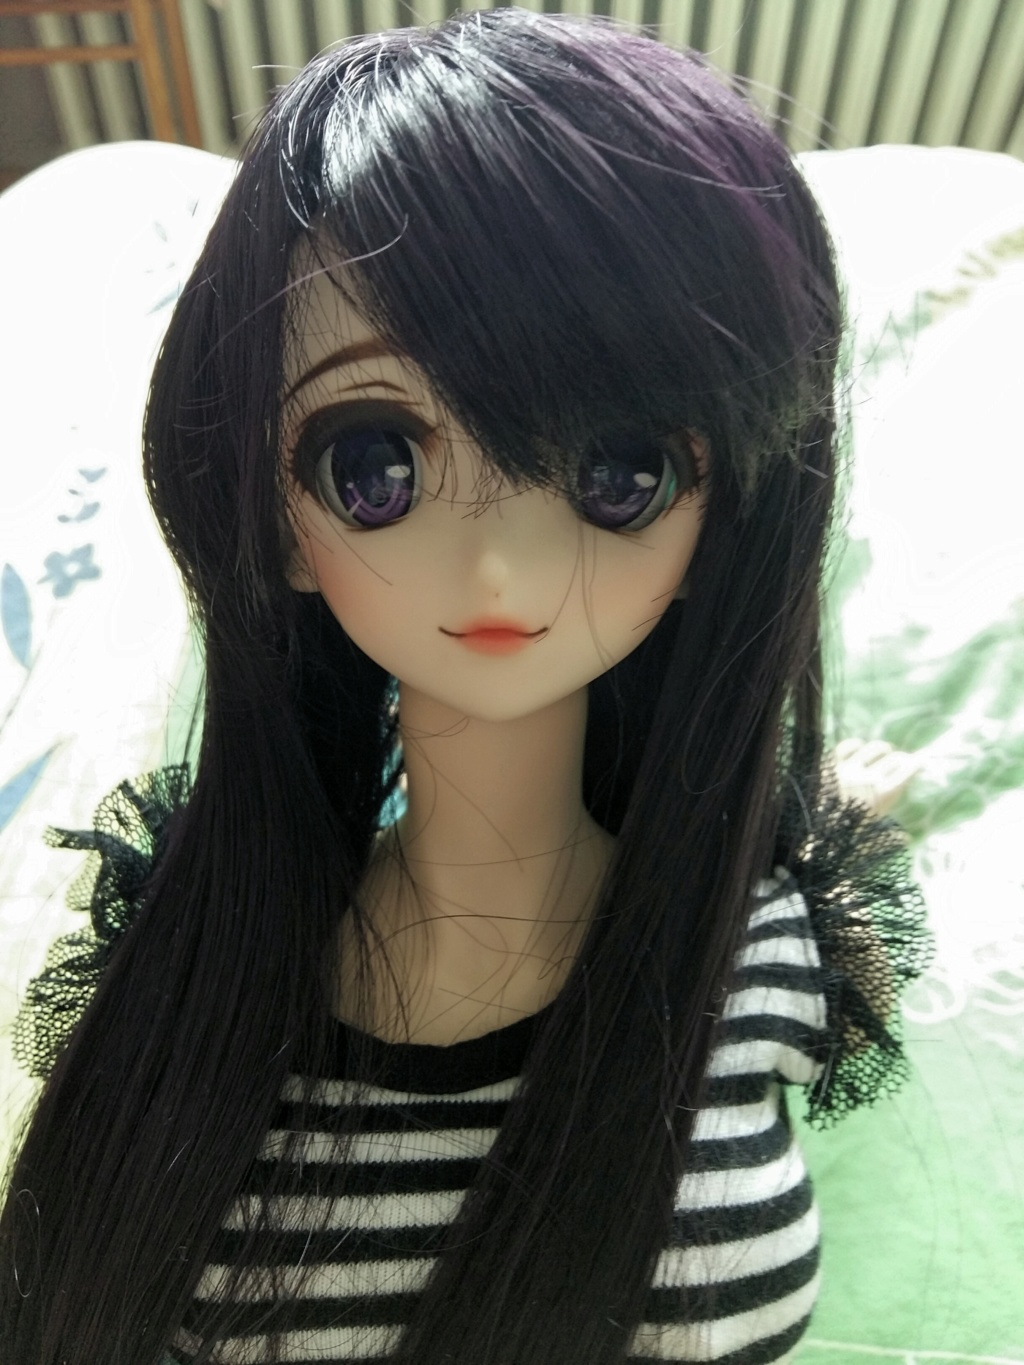 [Vends] Dollfie dream 03 head SWS dddy body NS + extras 2019-010